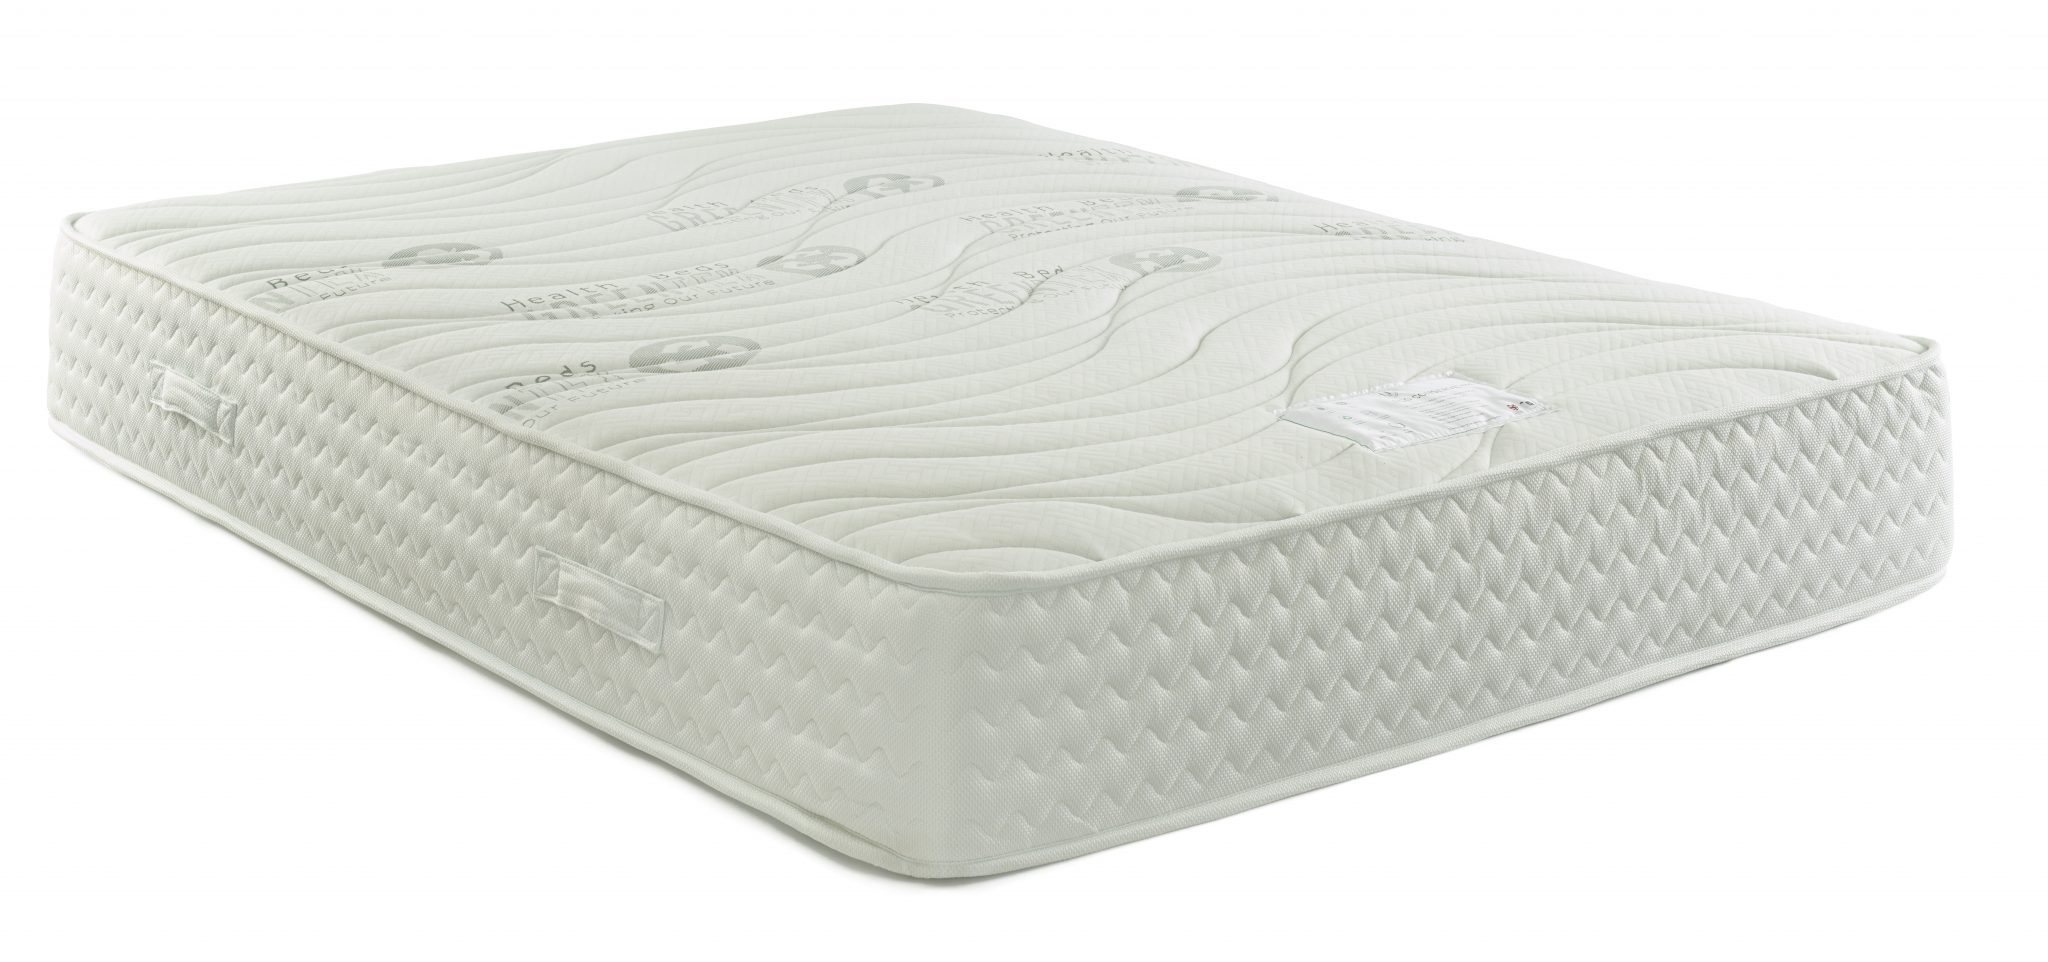 Image of Eco Conserve 1000 Pocket Sprung Mattress - Double